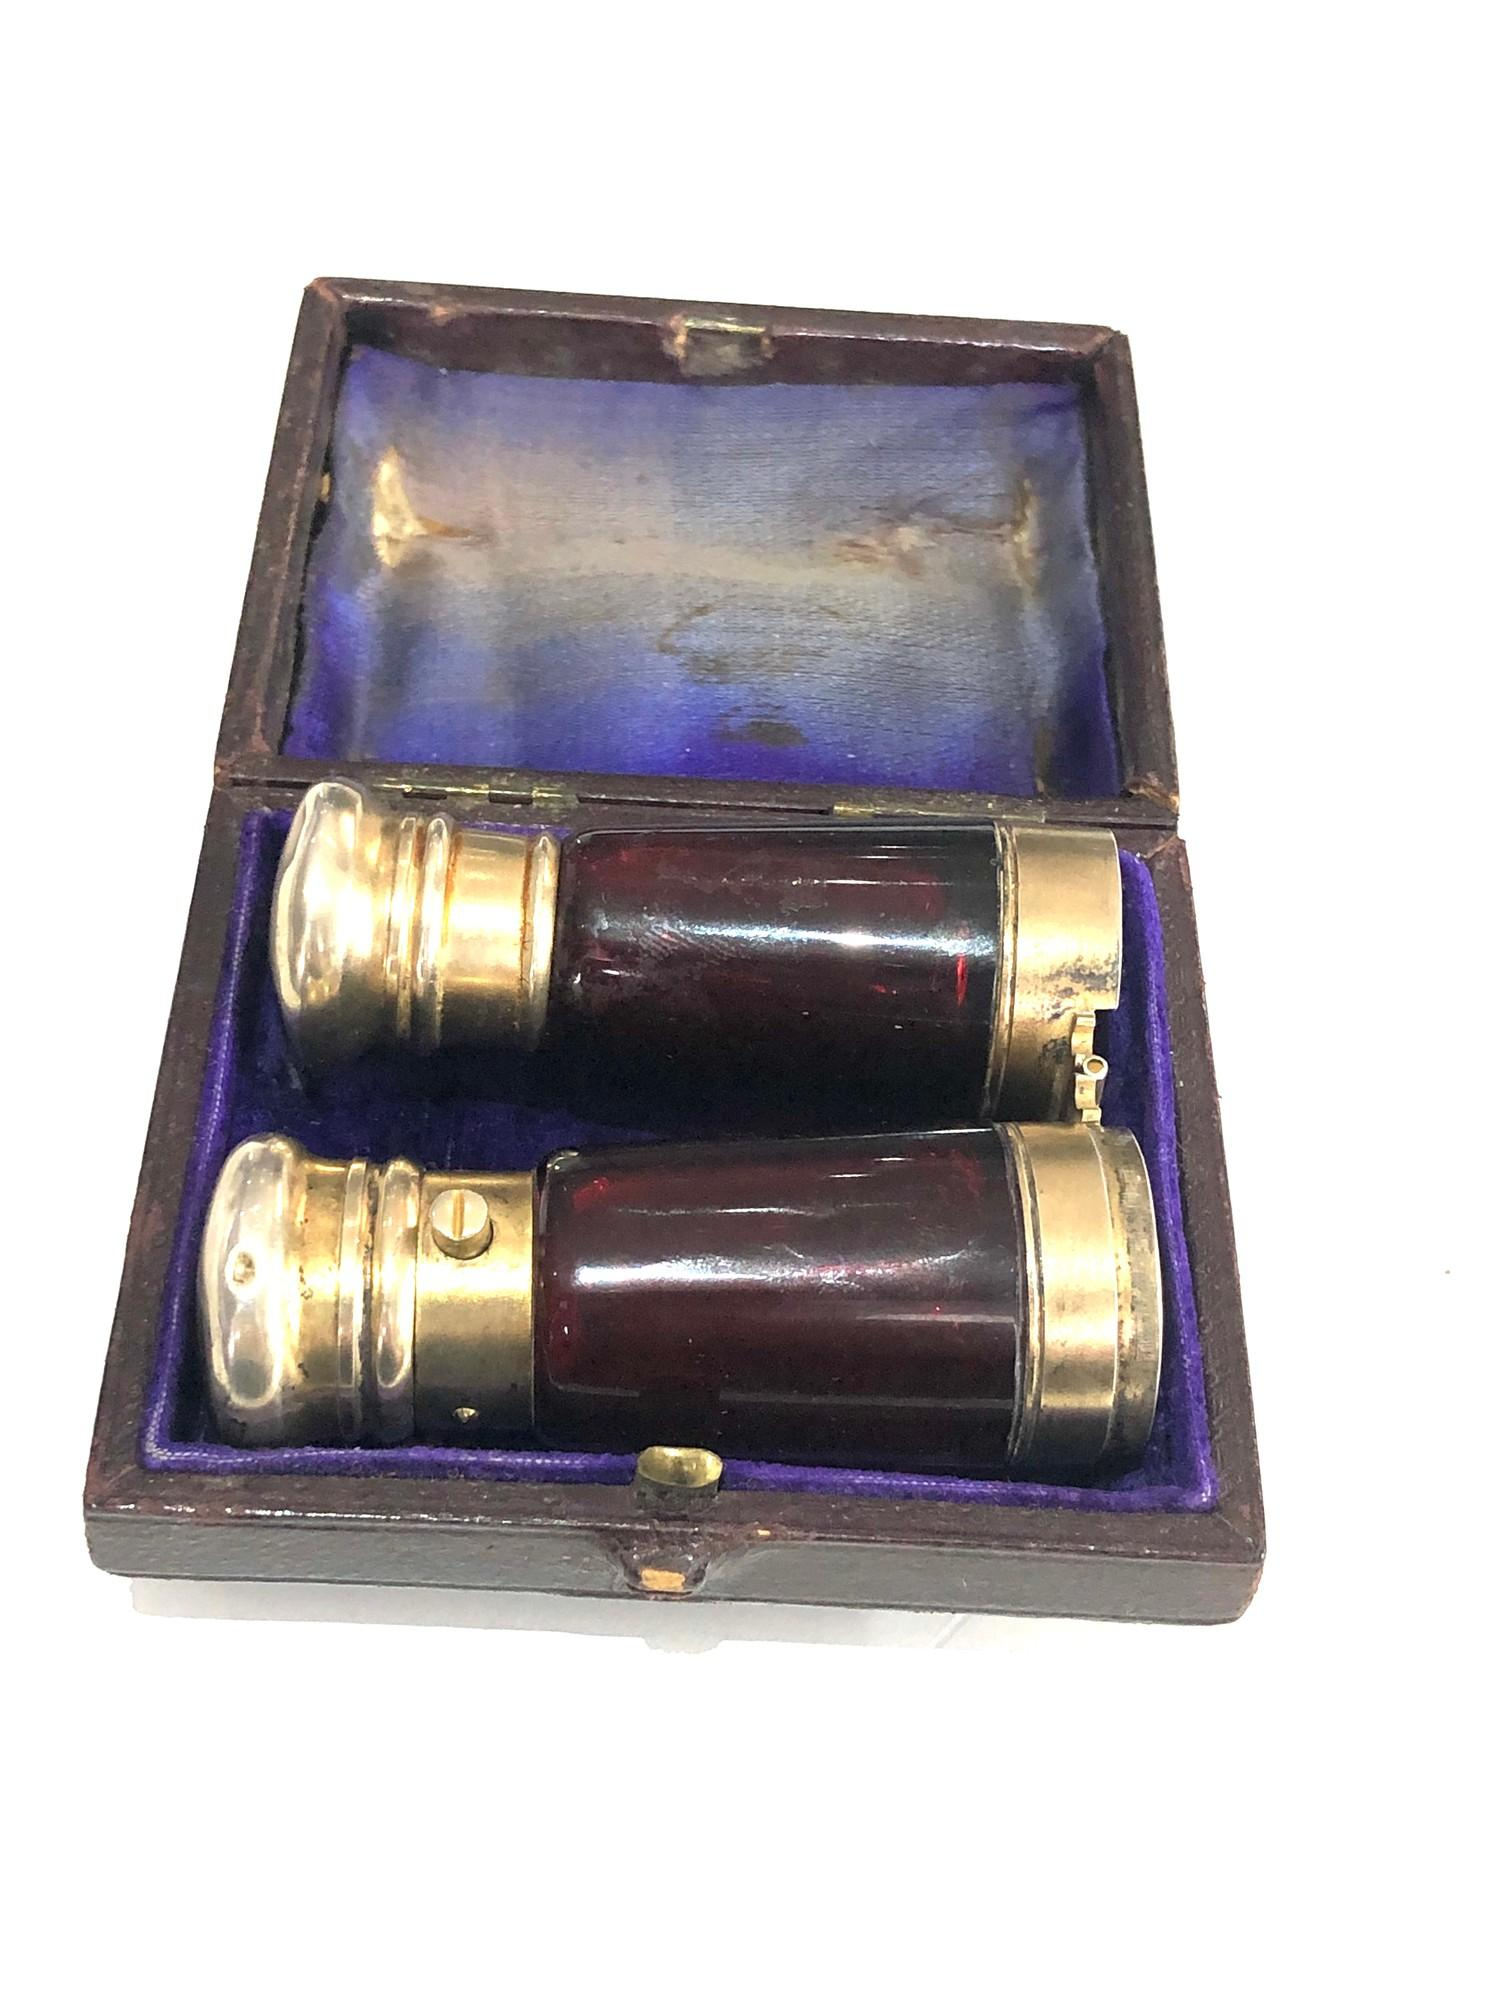 Rare antique ruby glass and silver mounted novelty binoculars scent bottle in original box by Maw - Image 8 of 11